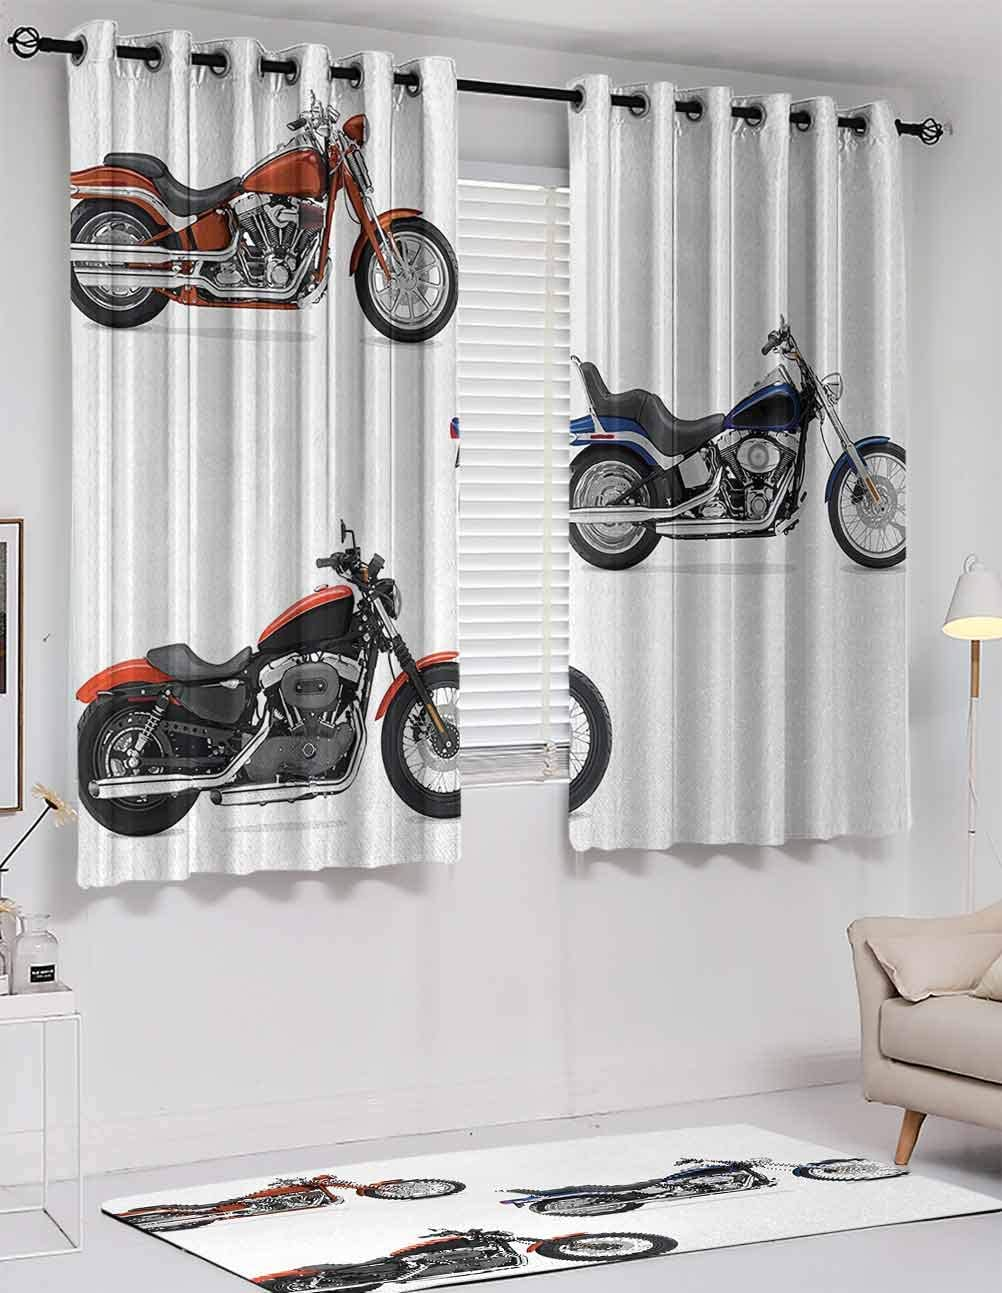 Shading Insulated curtains Modern Pattern Motorcycle curtain for houseroom, Illustration of Three Motorcycles Freedom Transport Risky Extreme Sports Theme, grommets valances, Orange Black, W72 x L72 I